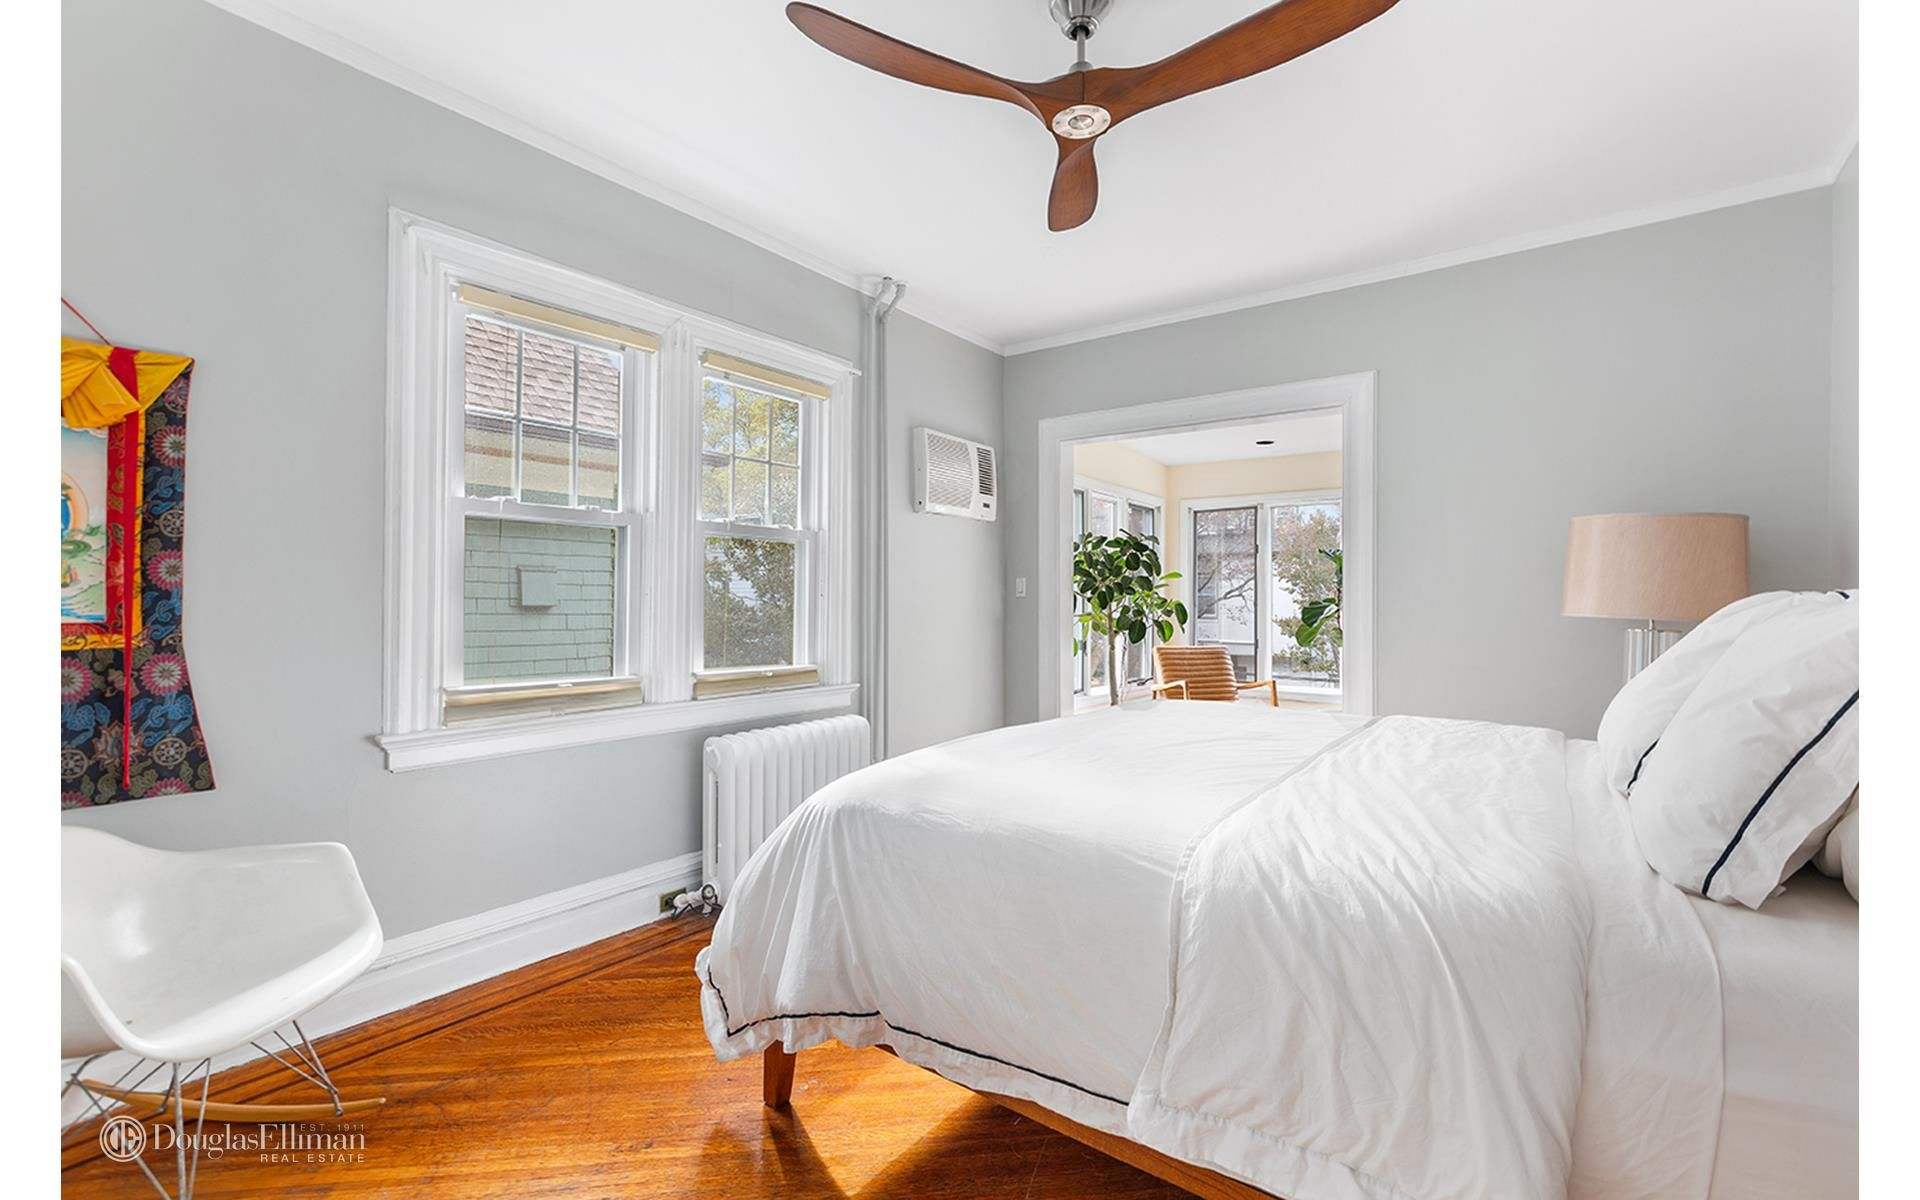 498 Westminster Rd Photo 11 - ELLIMAN-4609557